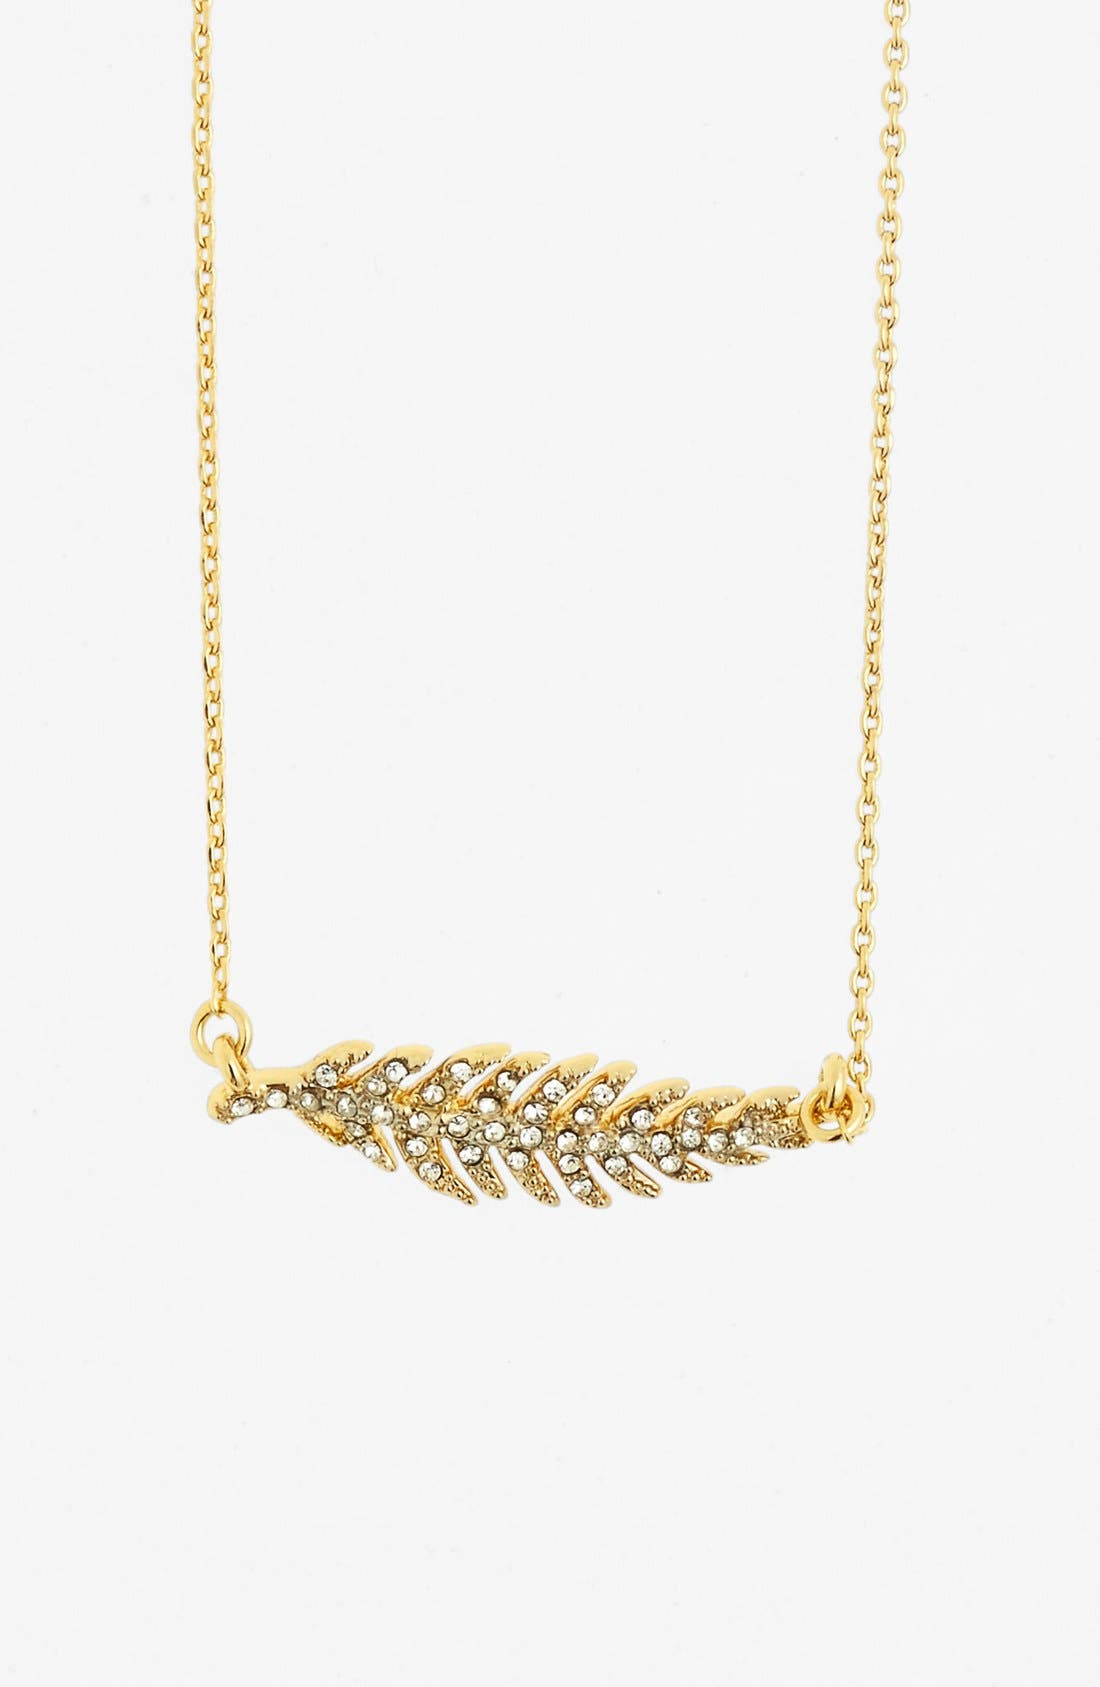 Alternate Image 1 Selected - Juicy Couture 'Juicy in Bloom' Pavé Feather Pendant Necklace